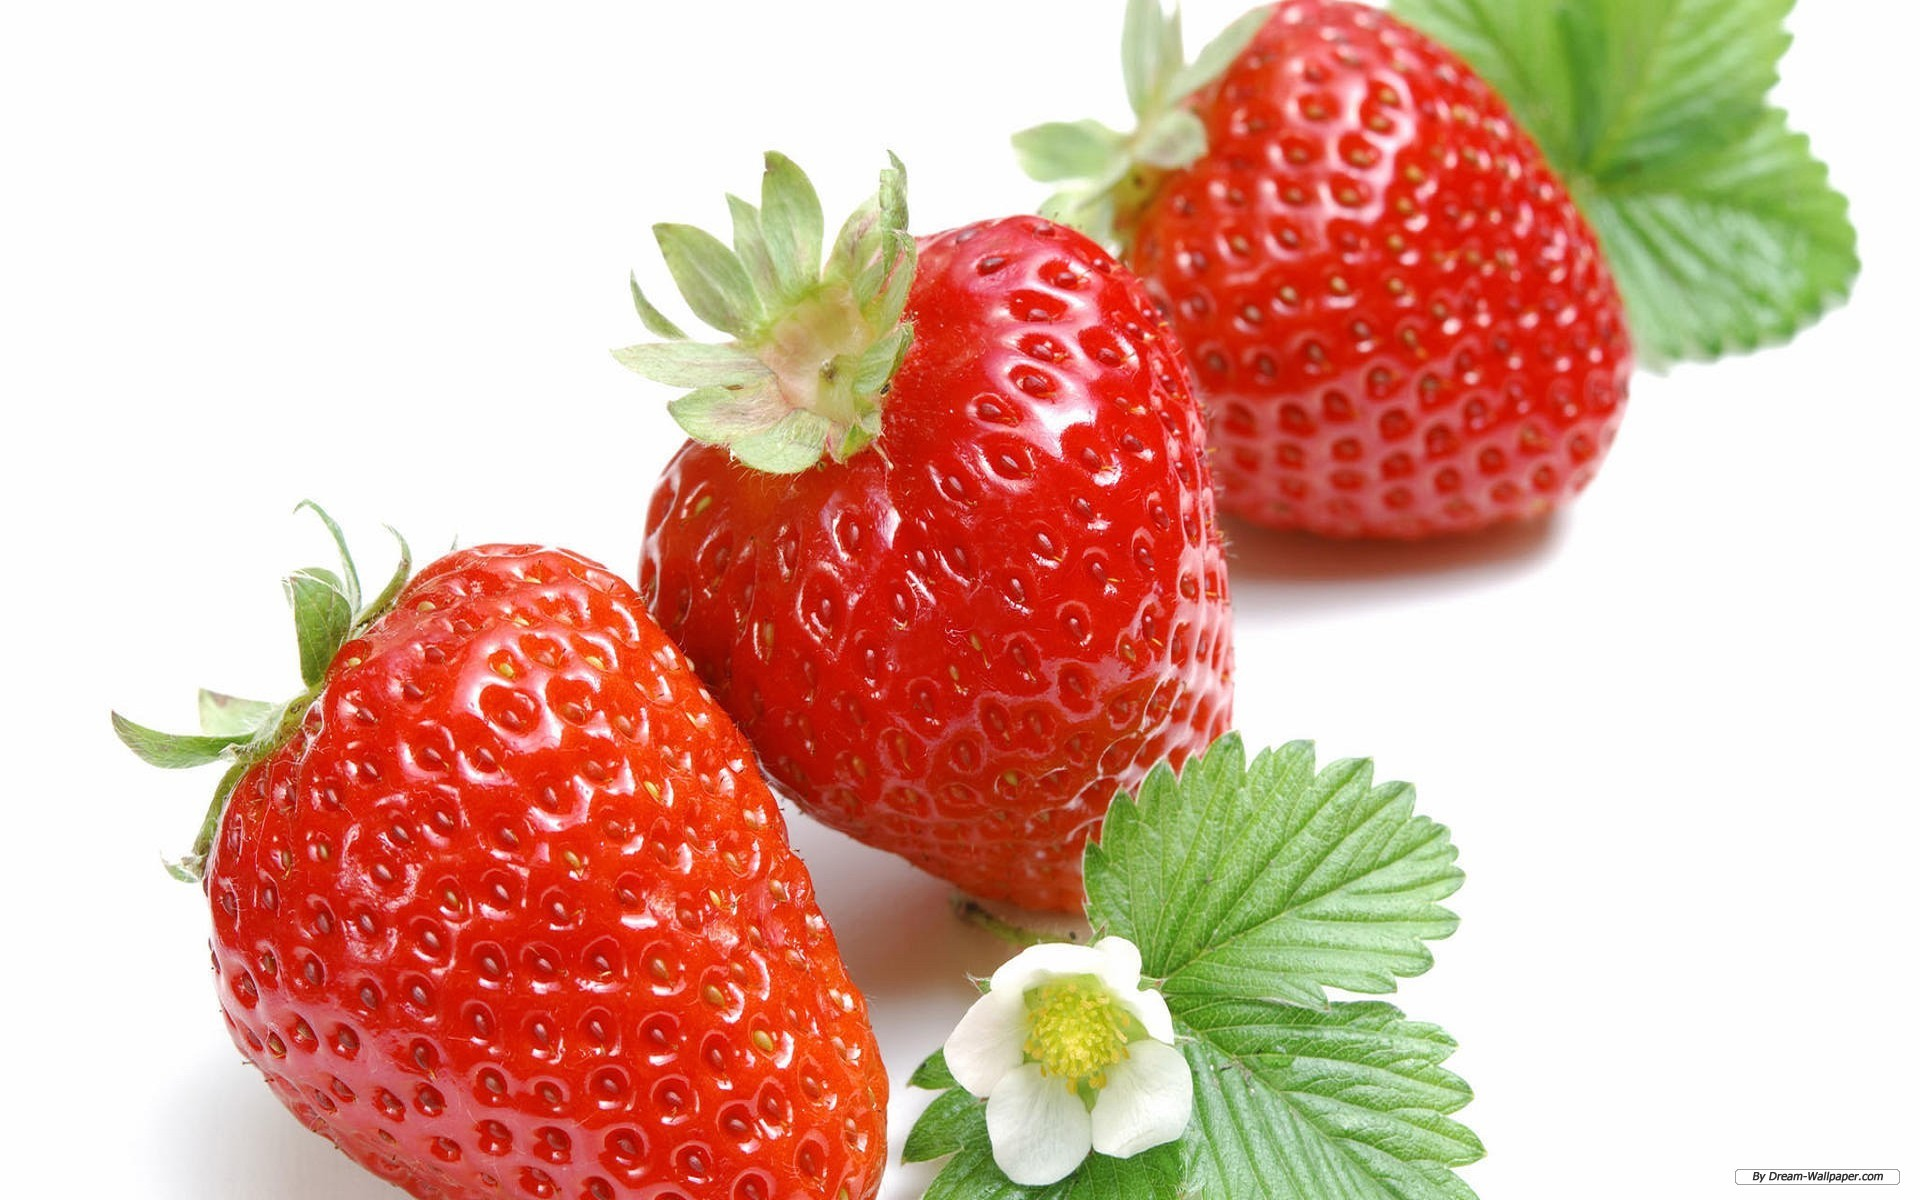 1920x1200 Free Photography wallpaper - Fresh strawberries wallpaper -   wallpaper - Index 2